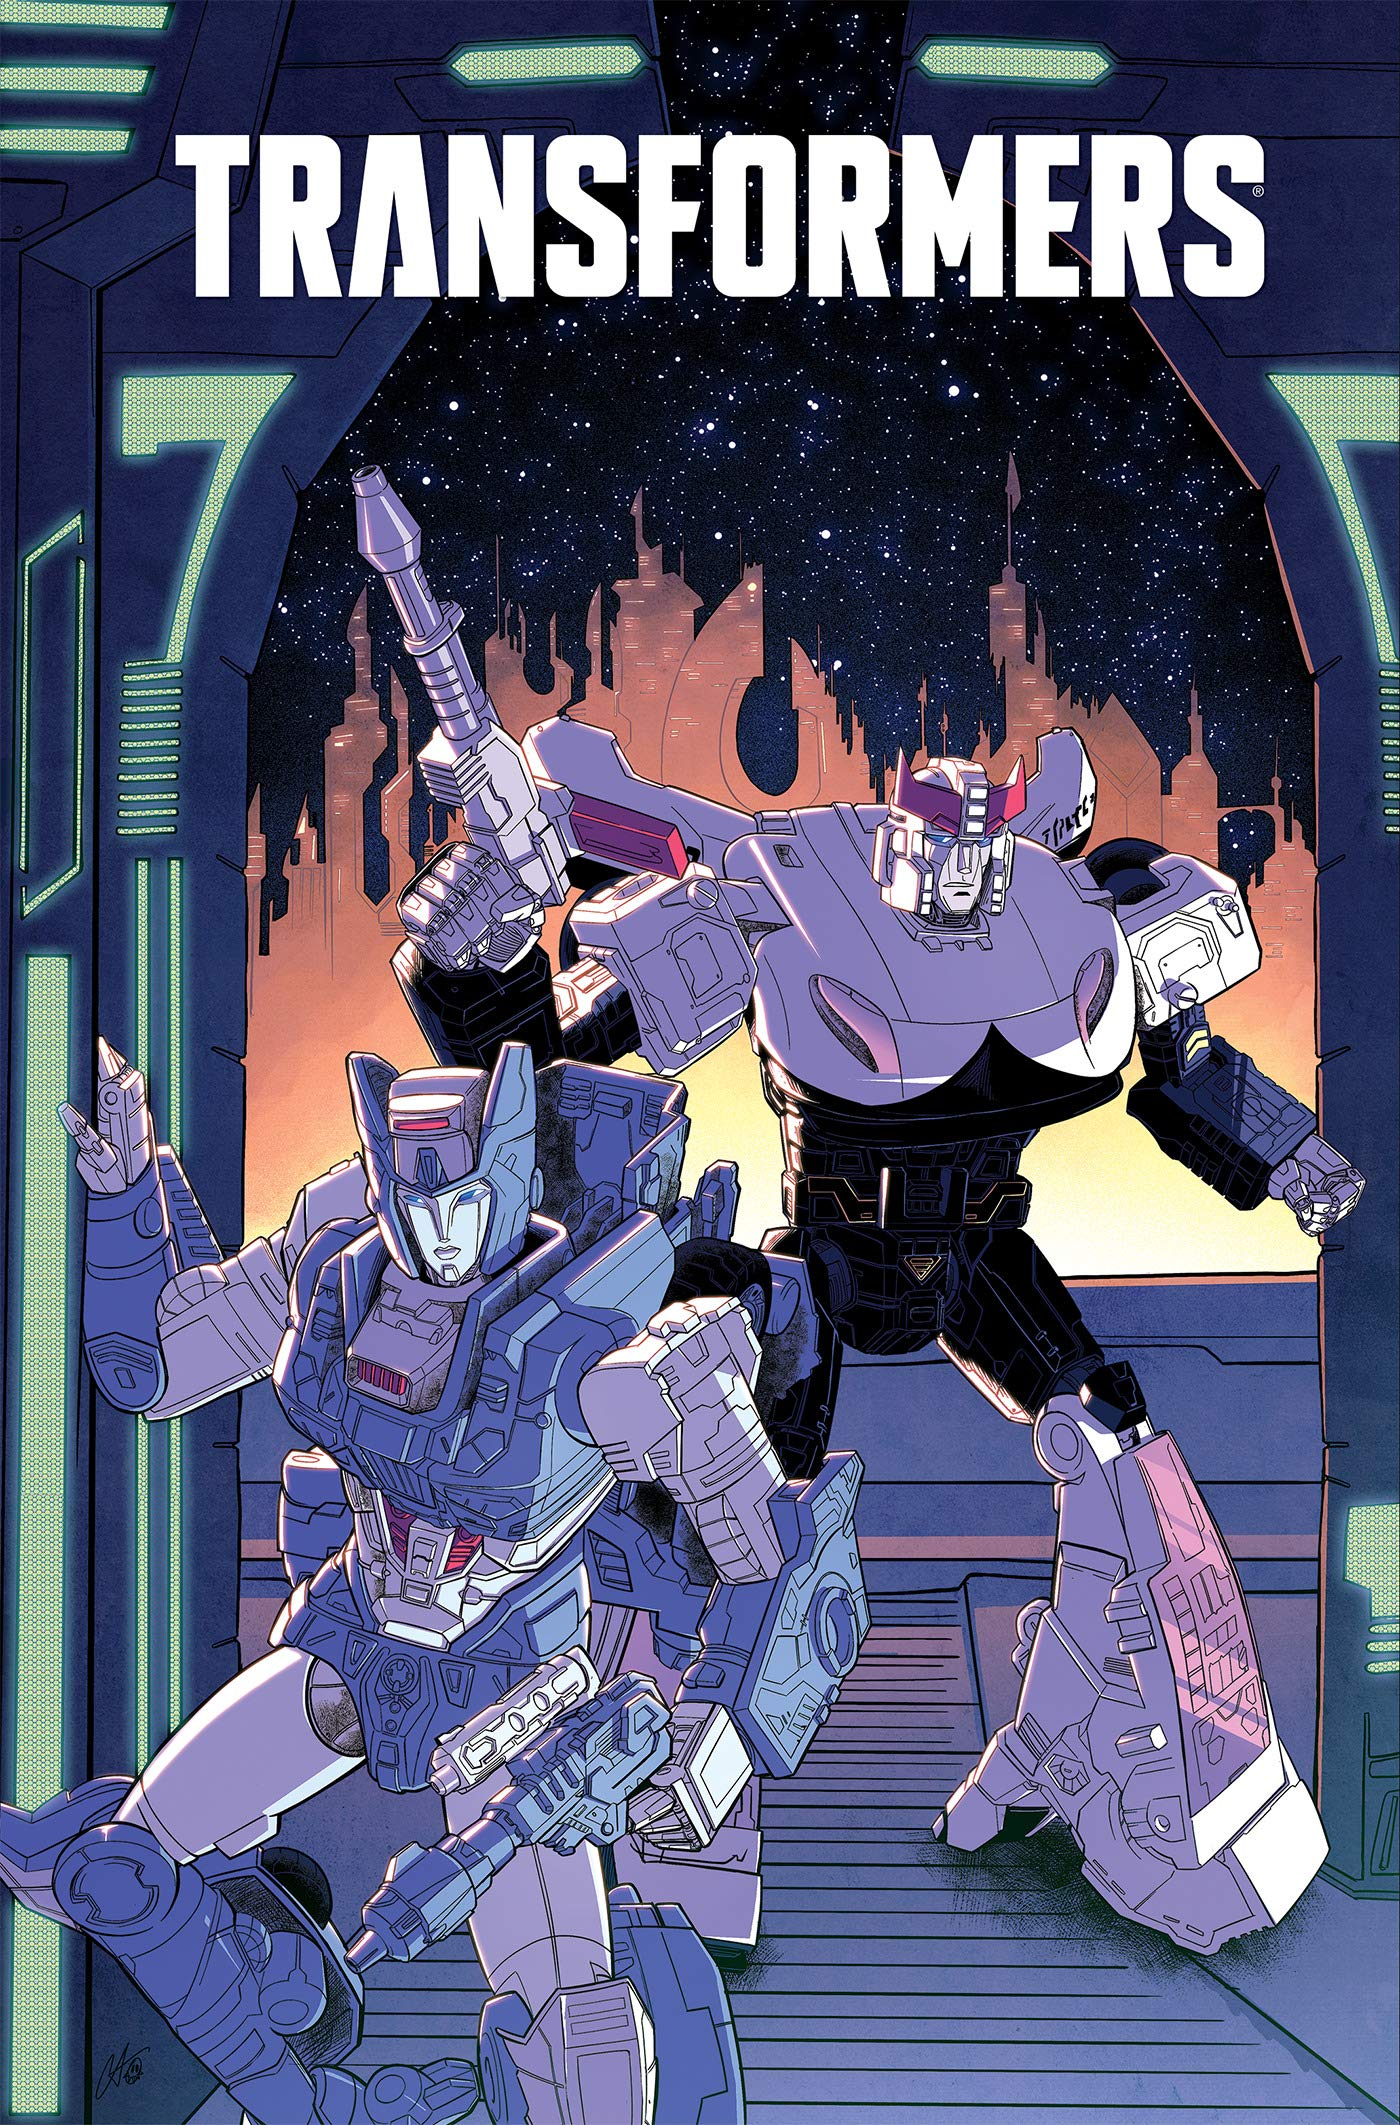 Transformers, Vol. 2: The Change In Their Nature (Transformers (2019)) by IDW Publishing